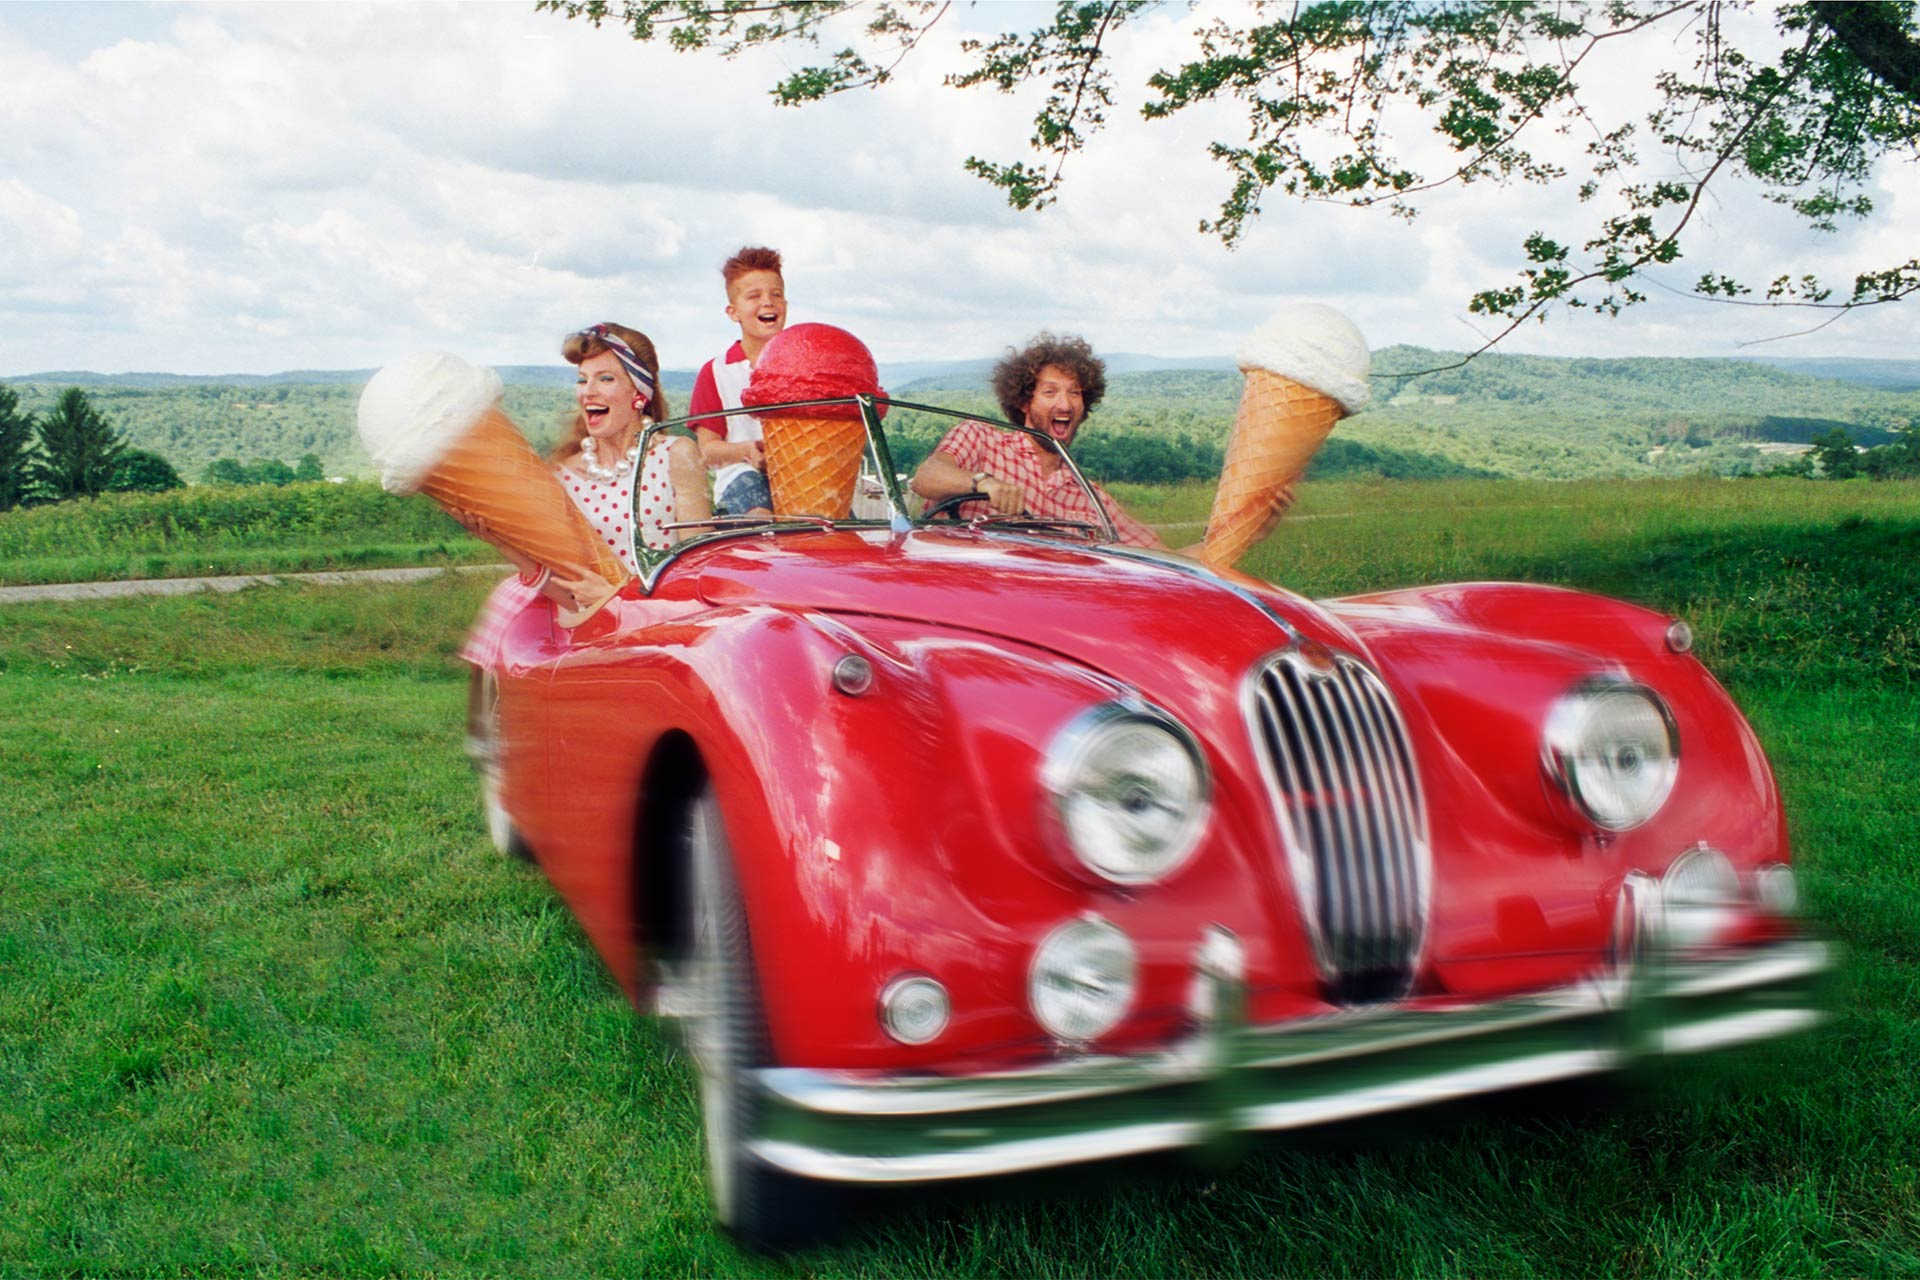 A family in a vintage red car in a field holding up giant ice cream cones